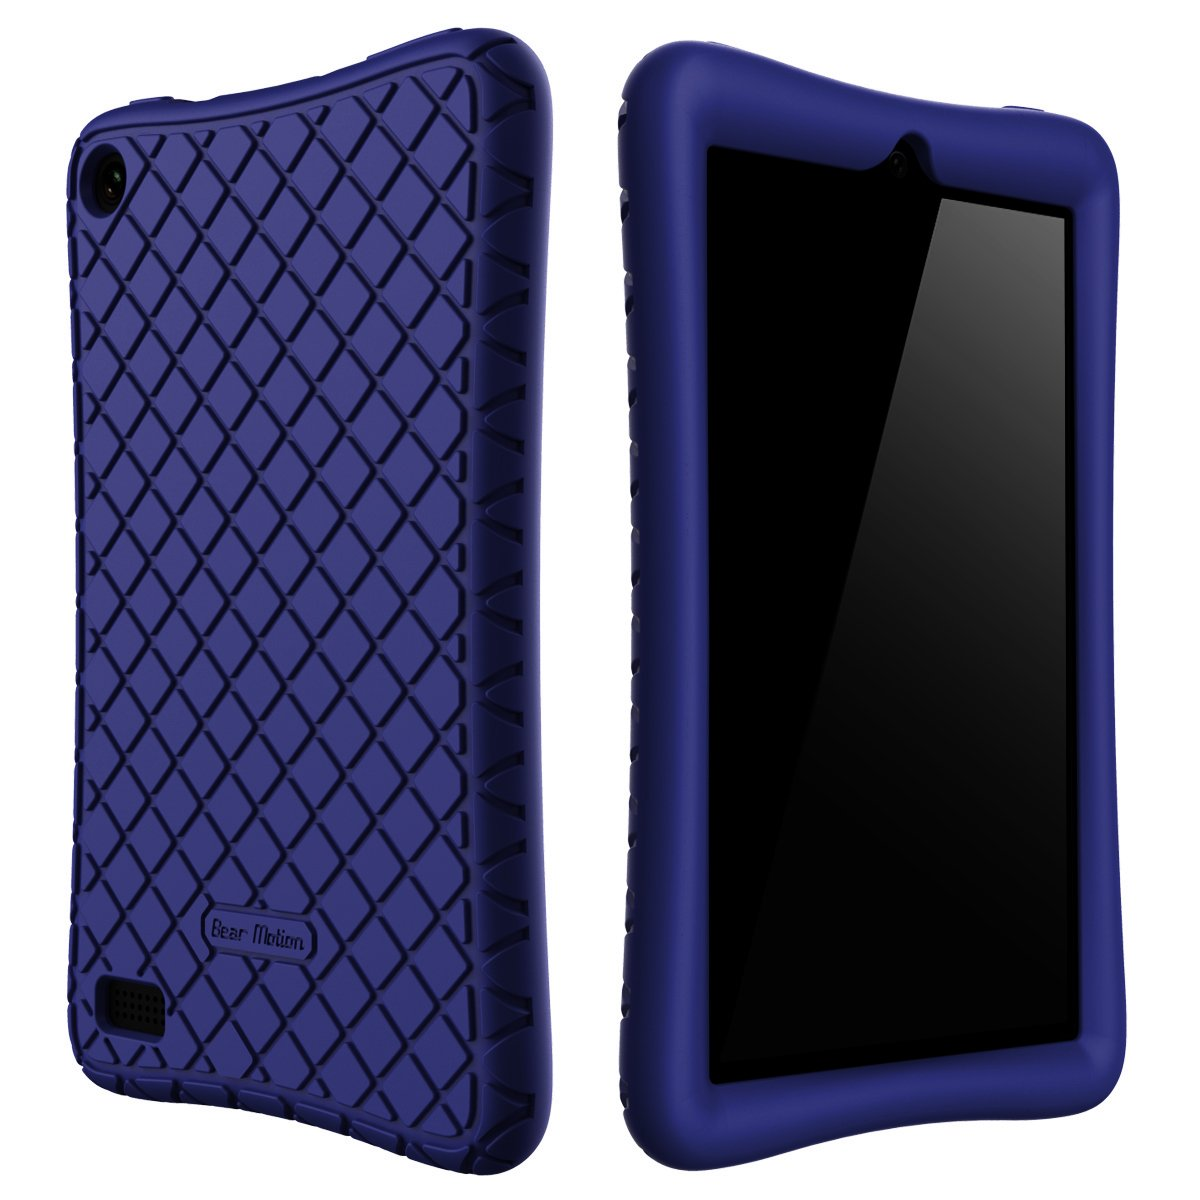 Funda Para Tablet Amazon Fire 7 - Silicona - Azul